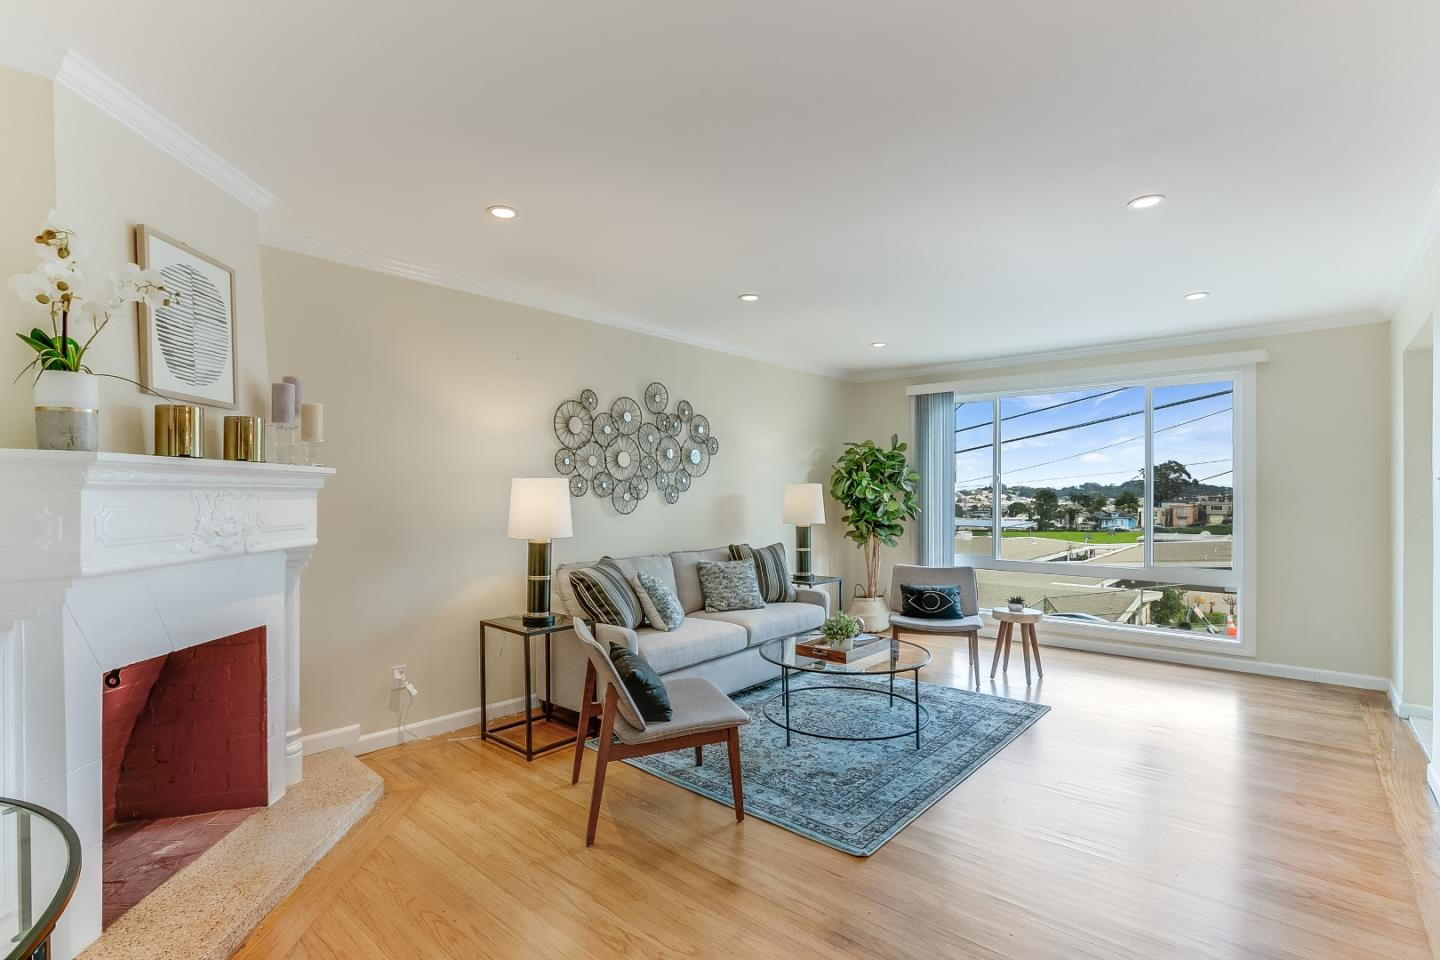 Image for 276 Whittier Street, <br>Daly City 94014